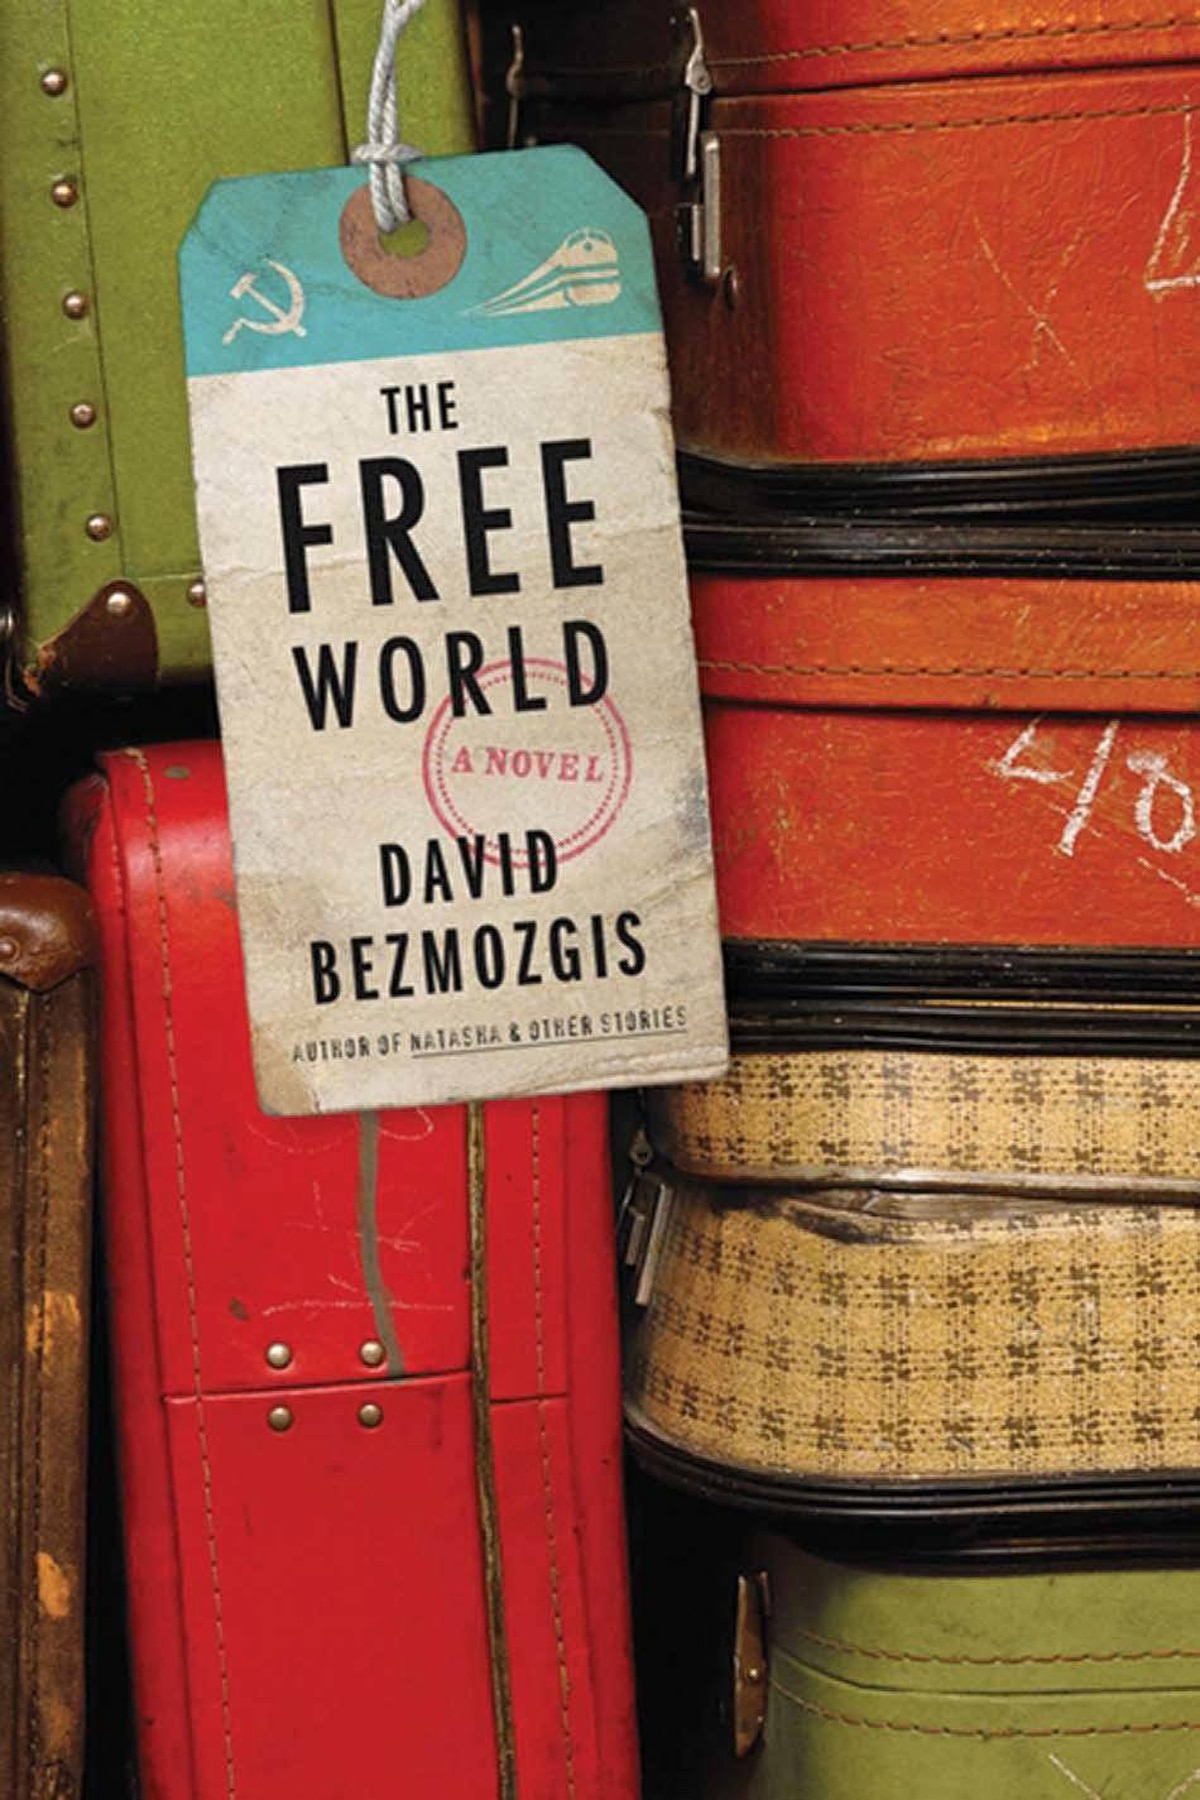 """THE FREE WORLD By David Bezmozgis (HarperCollins) Bezmozgis tells the story of three generations of Russian Jews in Italy in 1978, emigrating from the Soviet Union to the """"free world."""" The novel unspools in a voice as whimsical and wry and trippingly light as a sidewalk musician's, and Bezmozgis draws us in the way a consummate busker attracts his audience: with deceptive ease and unavoidable power. – Leah Hager Cohen"""